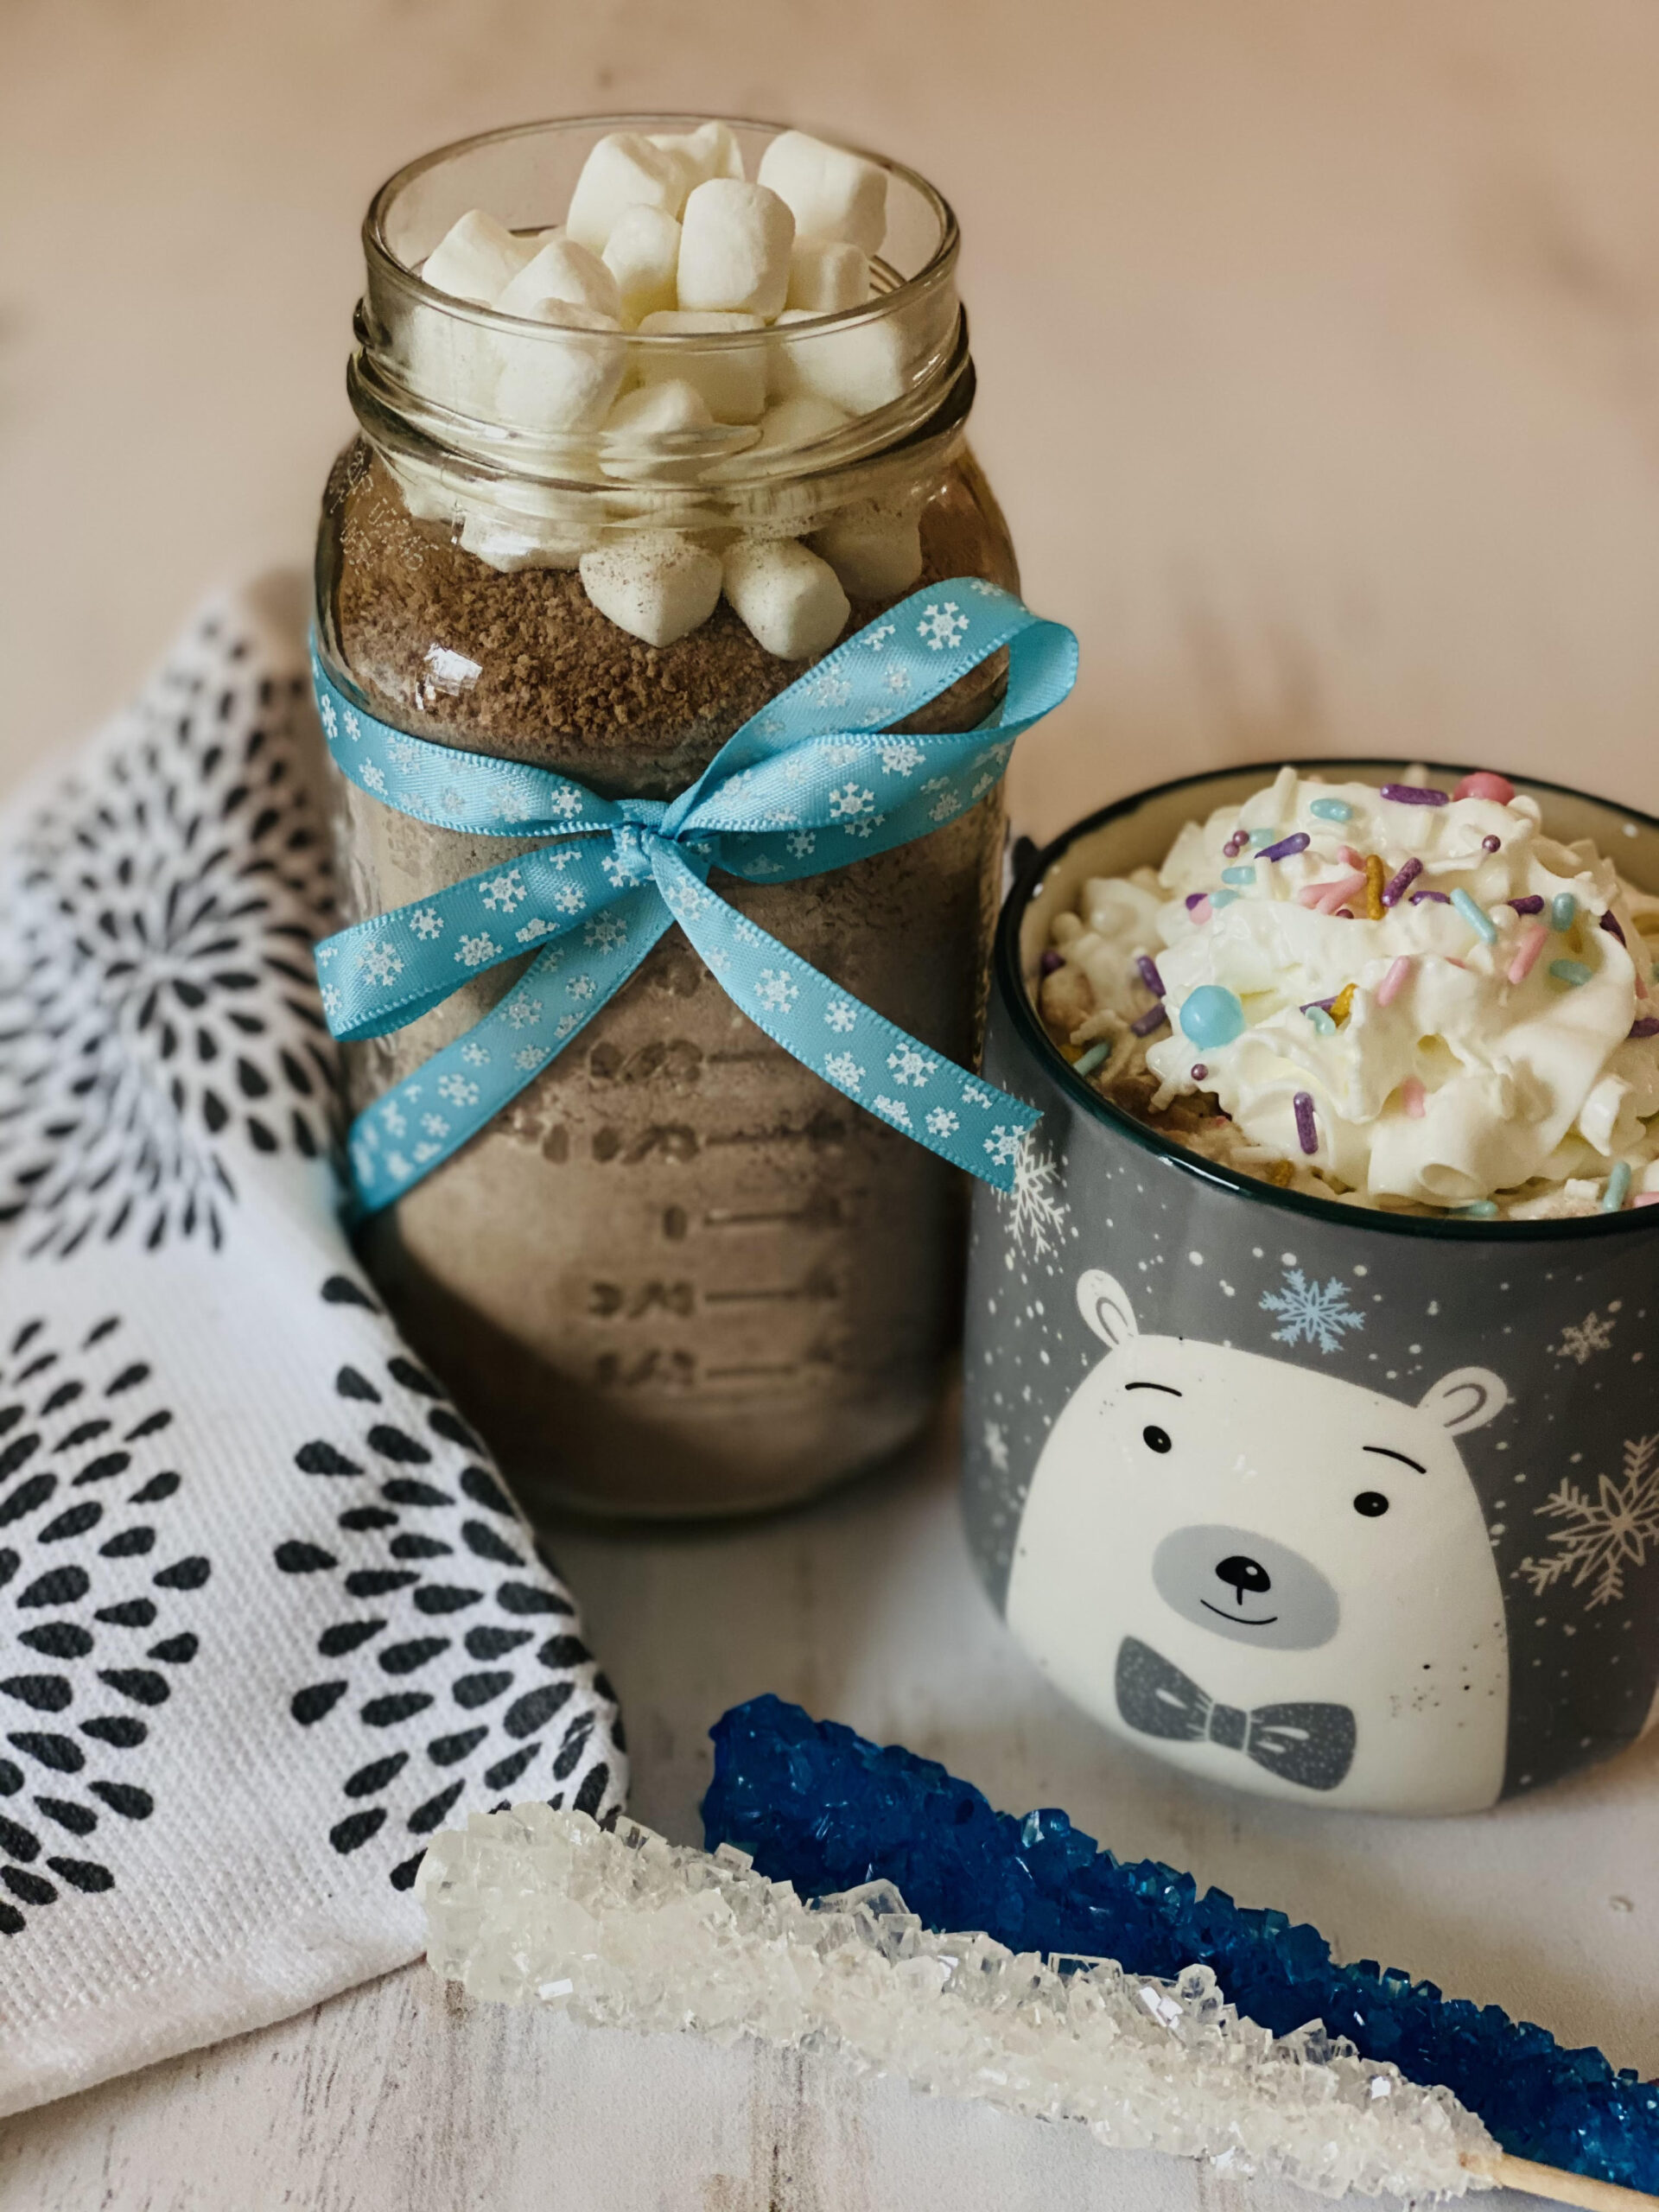 hot chocolate mix in jar with mug of hot chocolate and whipped cream